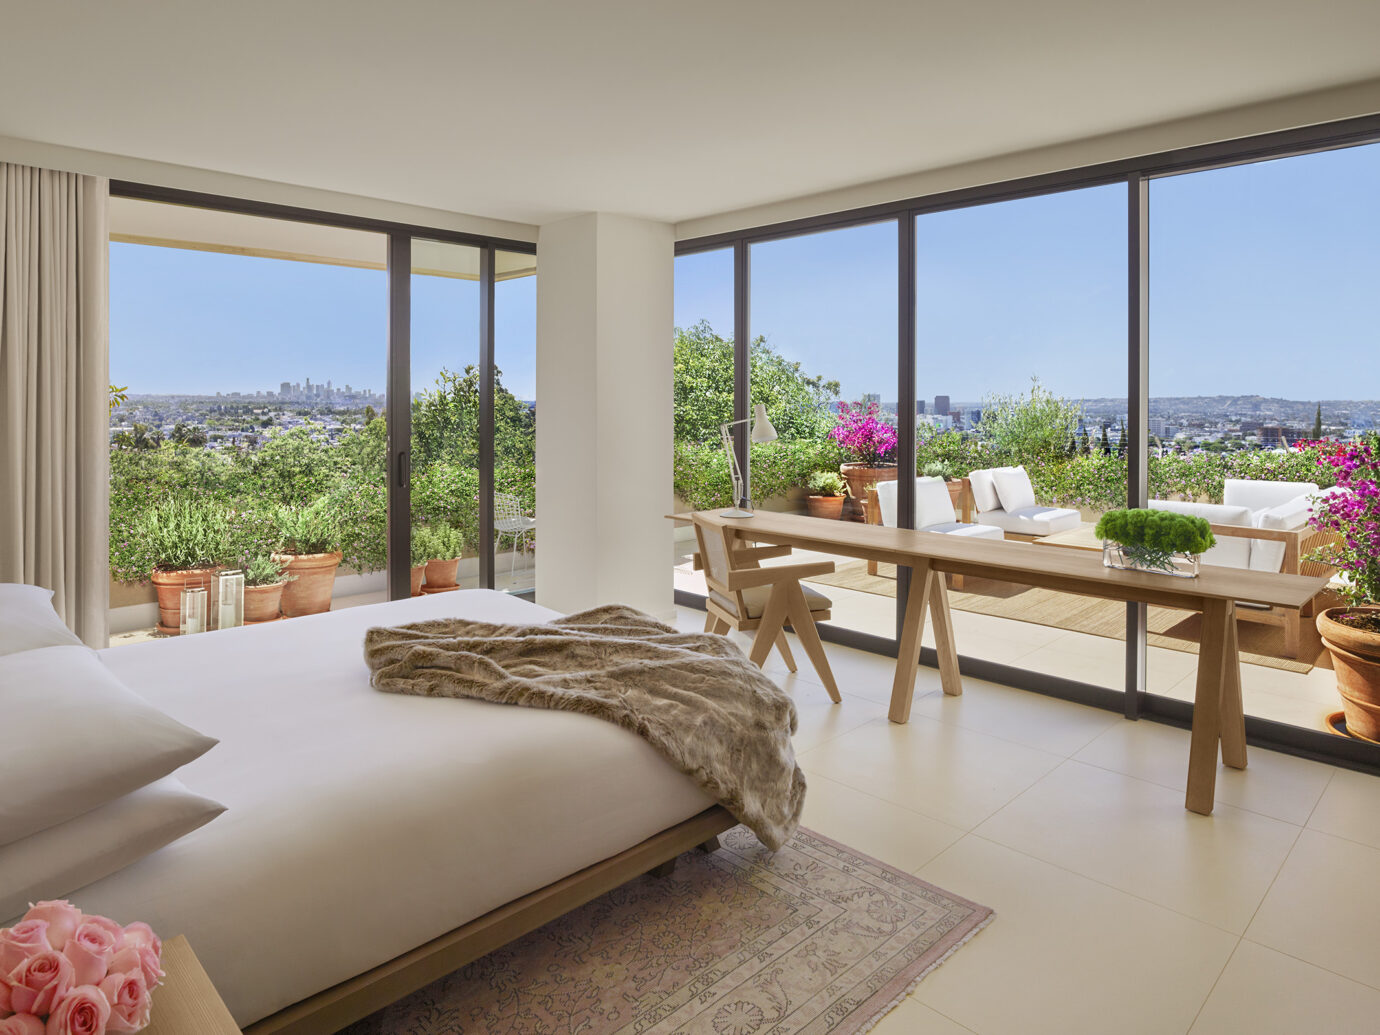 The West Hollywood Edition guest room